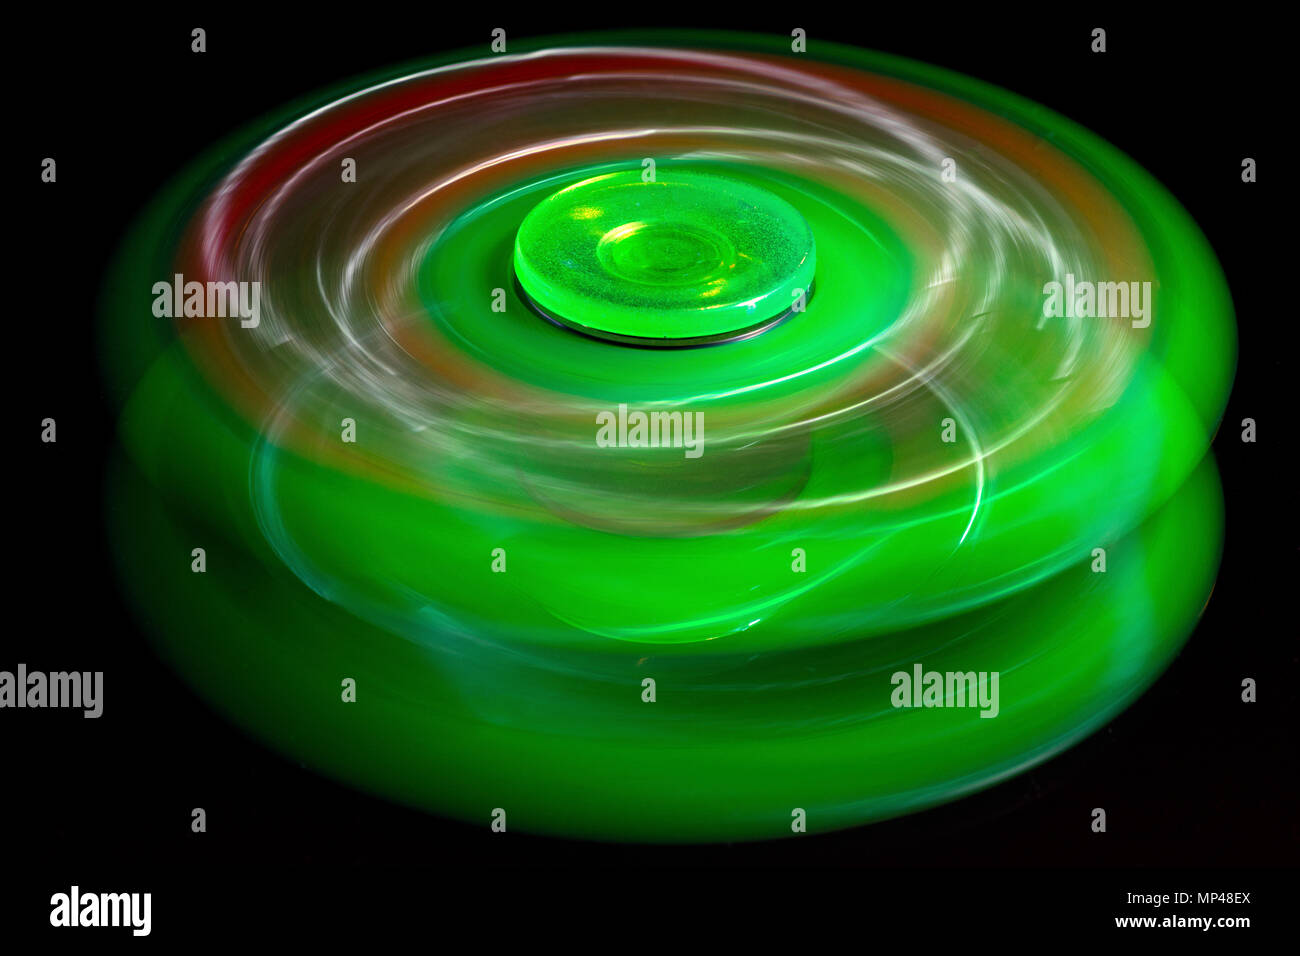 Spinning Green and Red Fidget Spinner Toy. - Stock Image